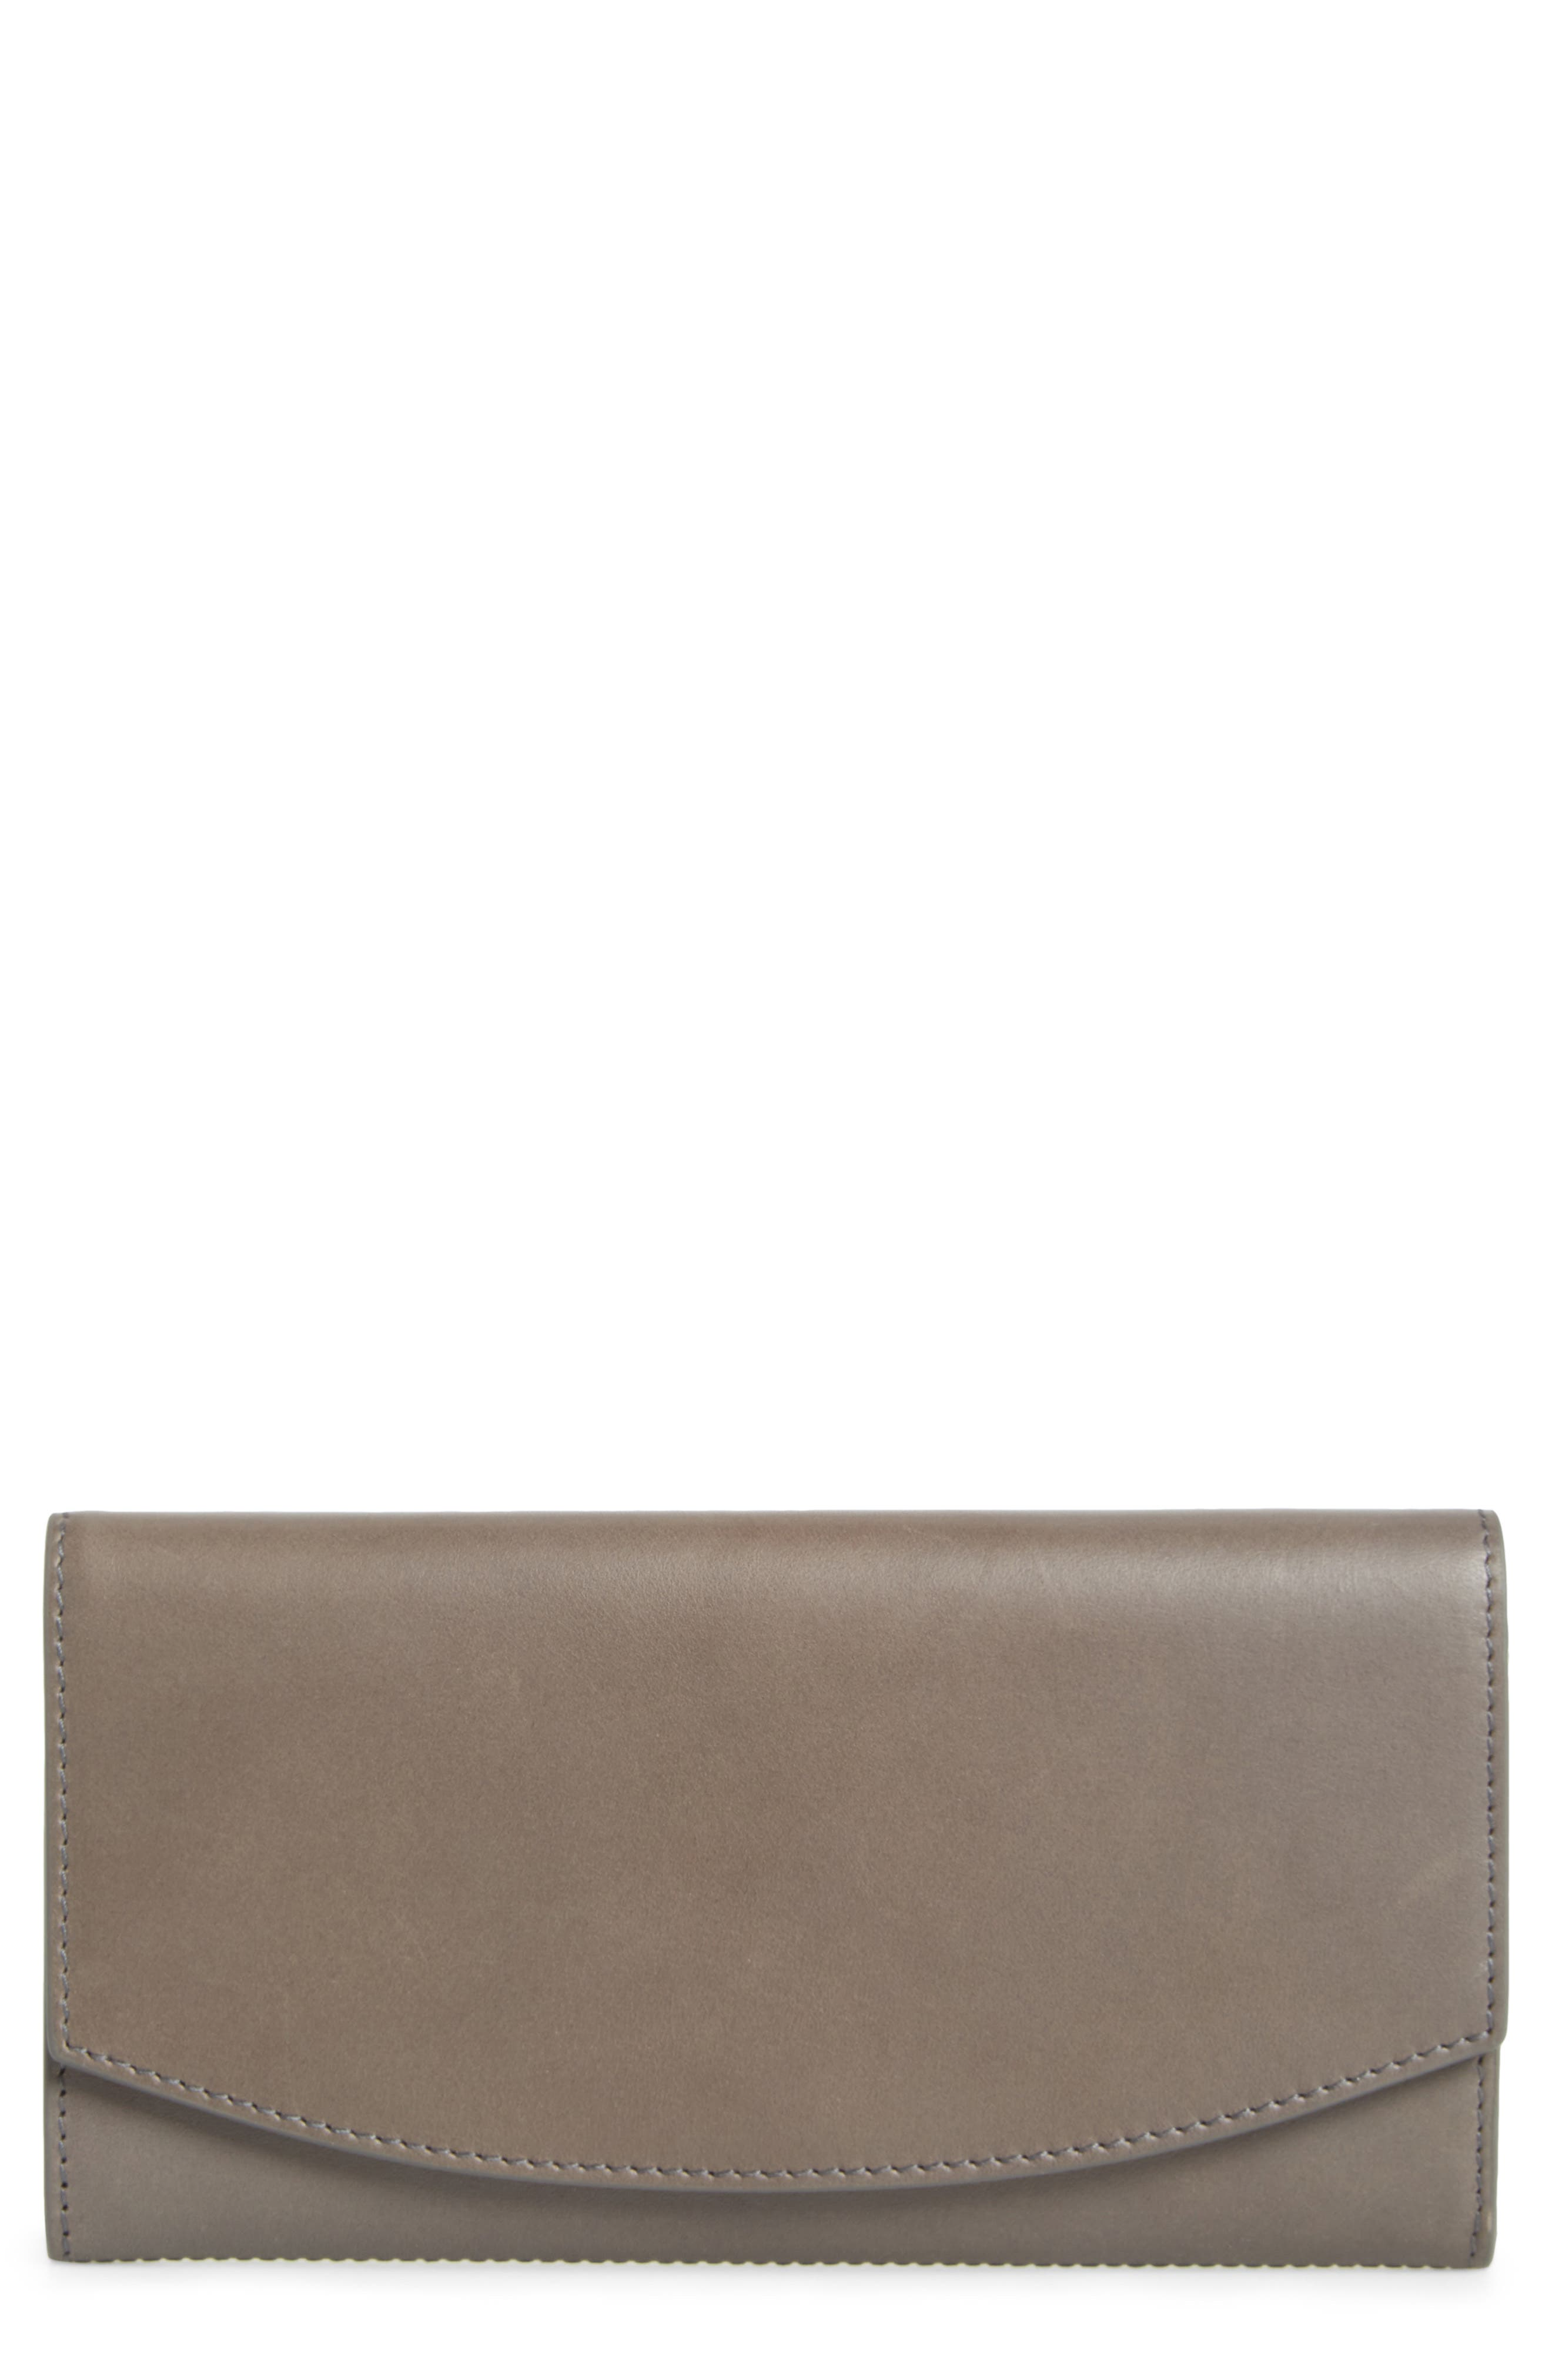 Main Image - Skagen Leather Continental Flap Wallet